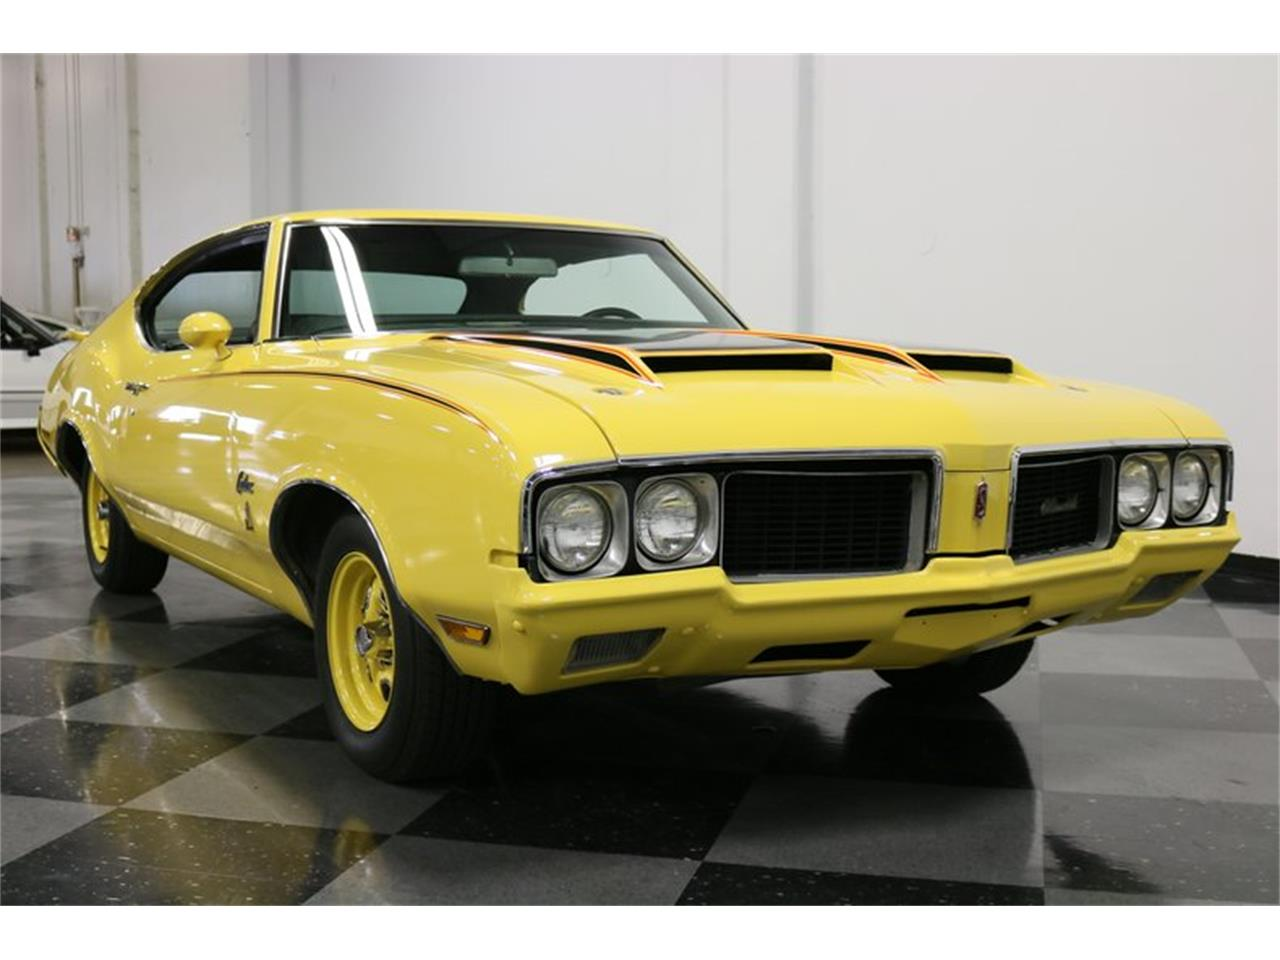 Large Picture of Classic '70 Oldsmobile Cutlass located in Ft Worth Texas Offered by Streetside Classics - Dallas / Fort Worth - PFUG